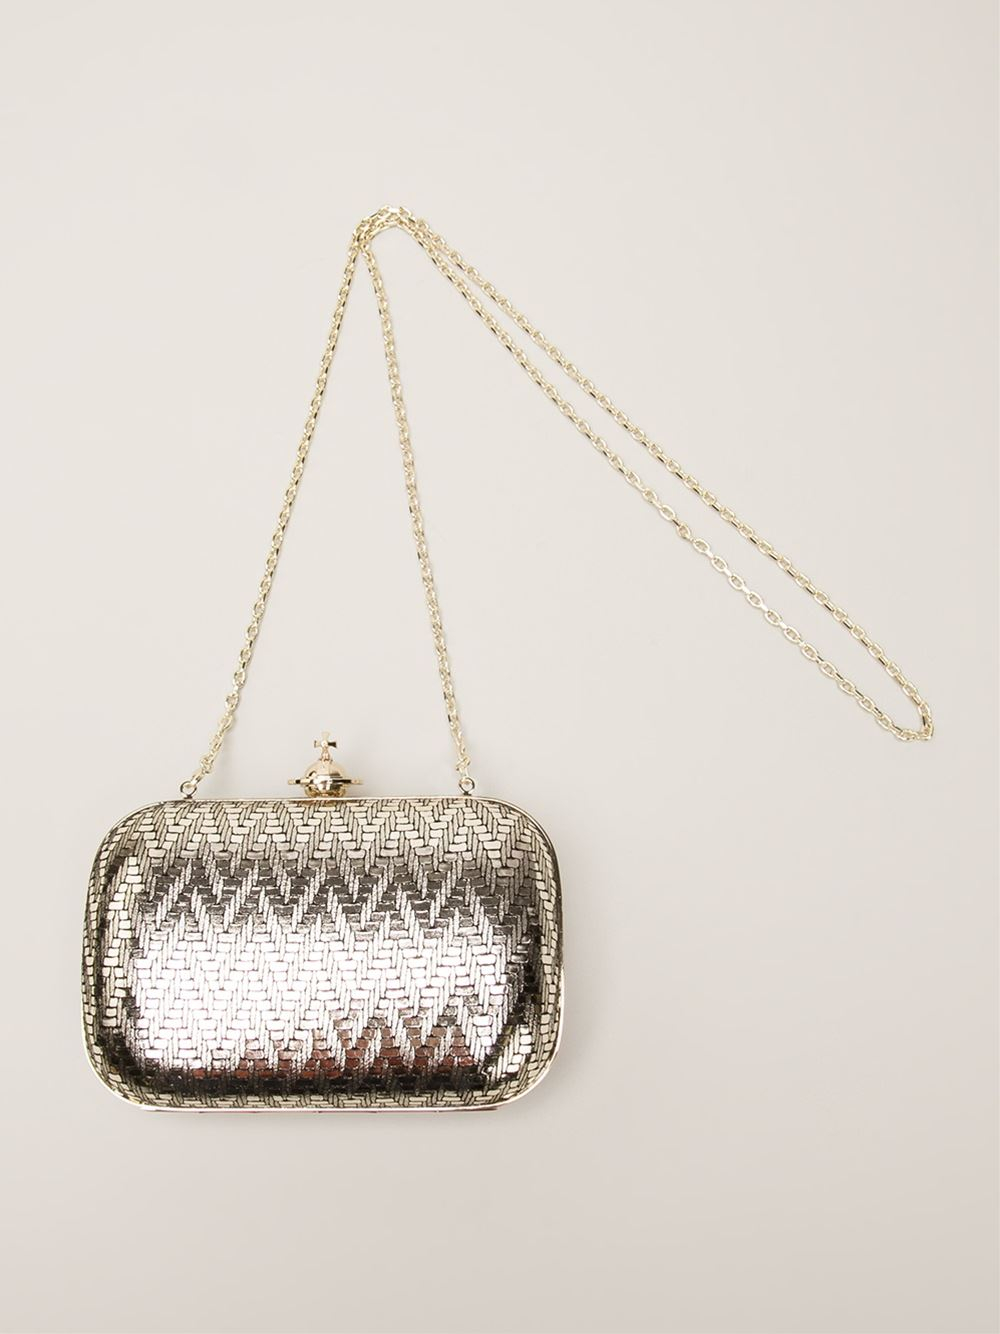 bad4a848a Vivienne Westwood Small 'Grace' Clutch in Metallic - Lyst